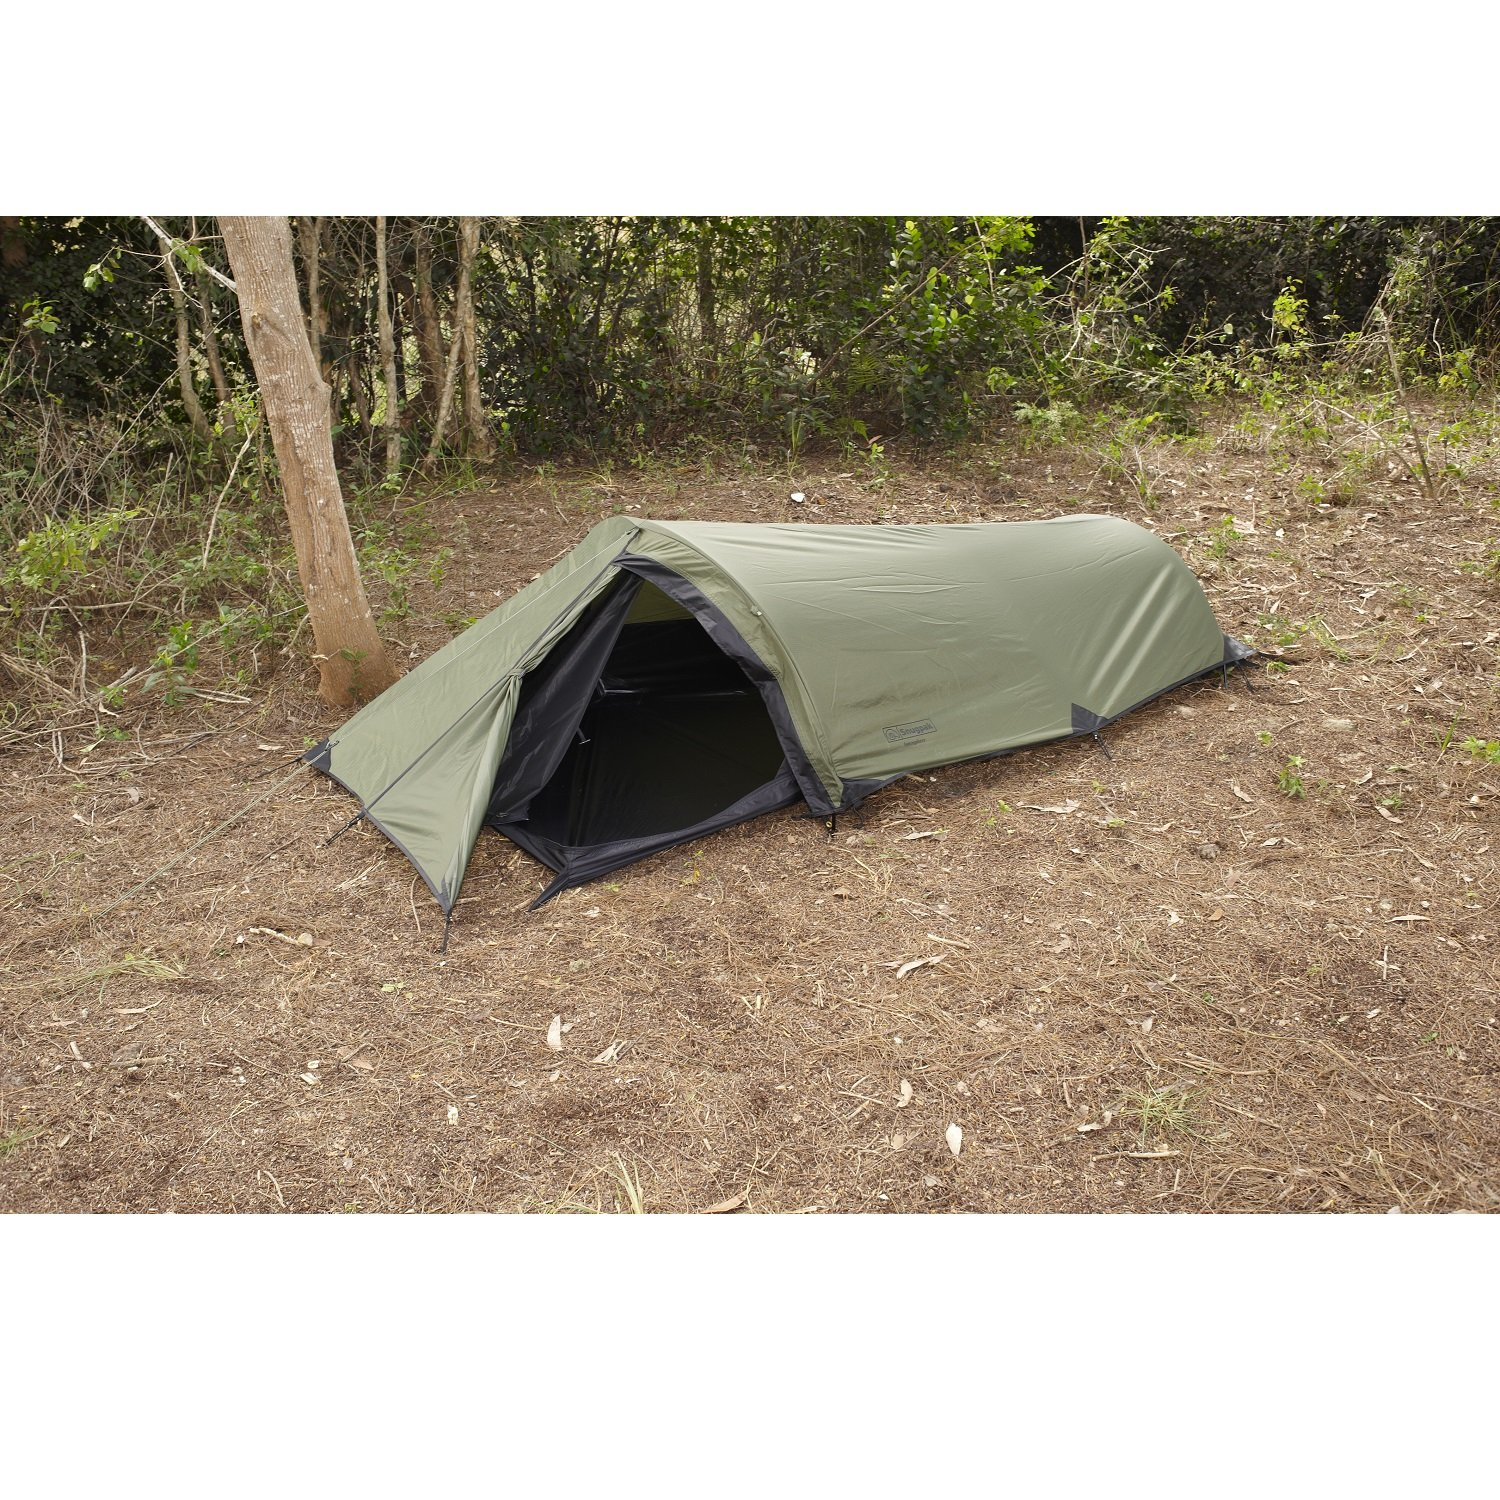 Snugpak The Ionosphere 1 Man Dome Tent 94  sc 1 st  Outdoorzer.com & The Best Motorcycle Camping Tent: 5 Reviews And Ultimate Guide